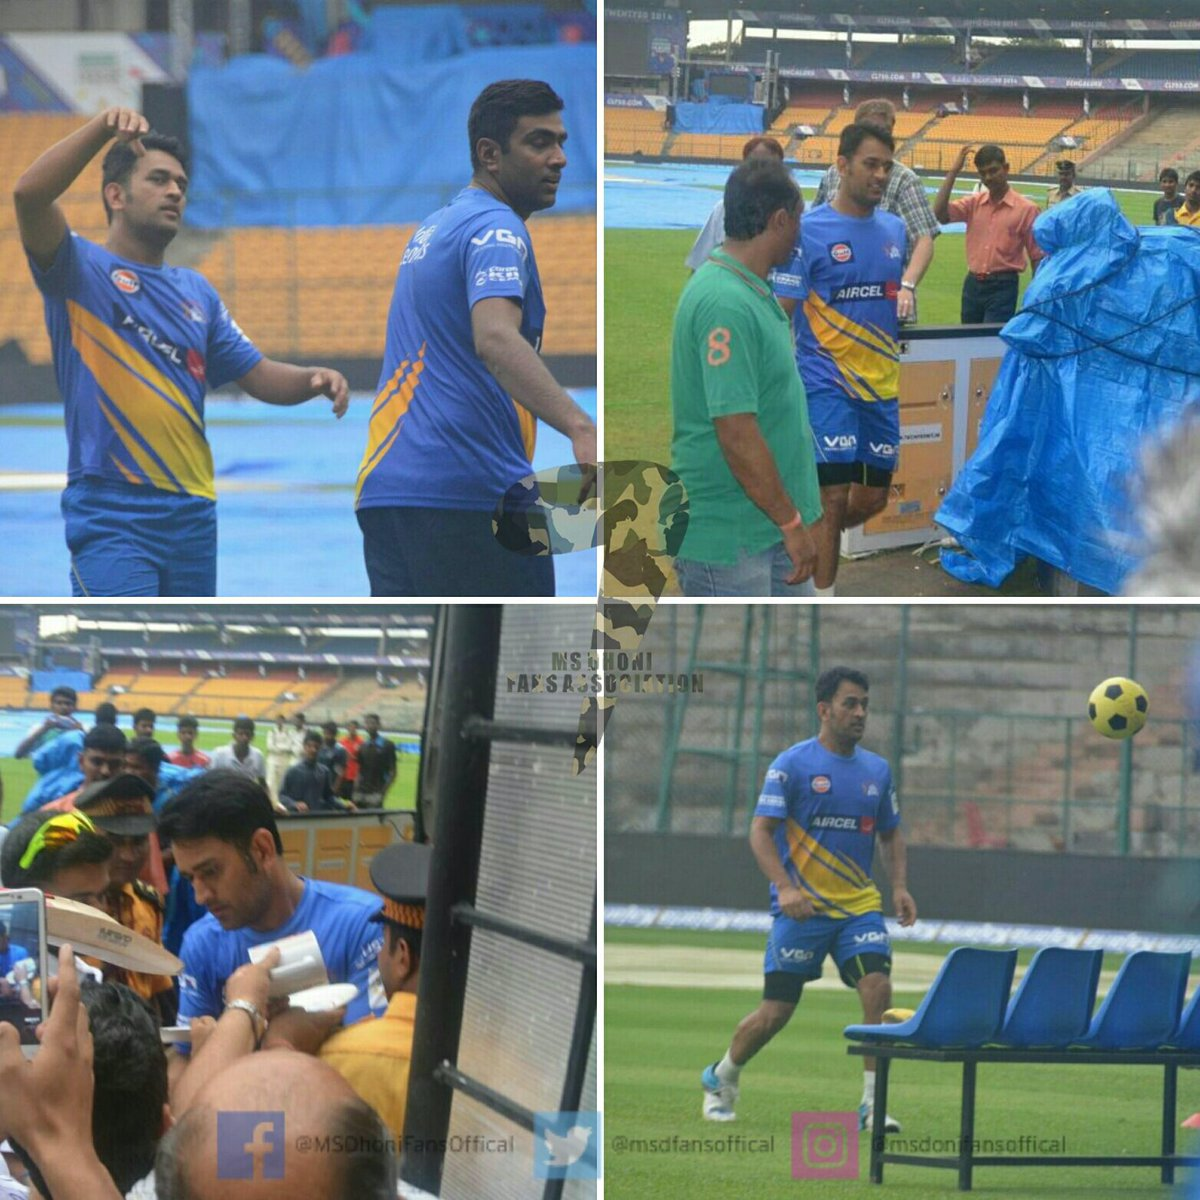 Throwback to #CSK times. Practice. #CaptainCool #Dhoni #Ashwin #Football  @ChennaiIPL @msdhoni @ashwinravi99<br>http://pic.twitter.com/OT7npKyiMl